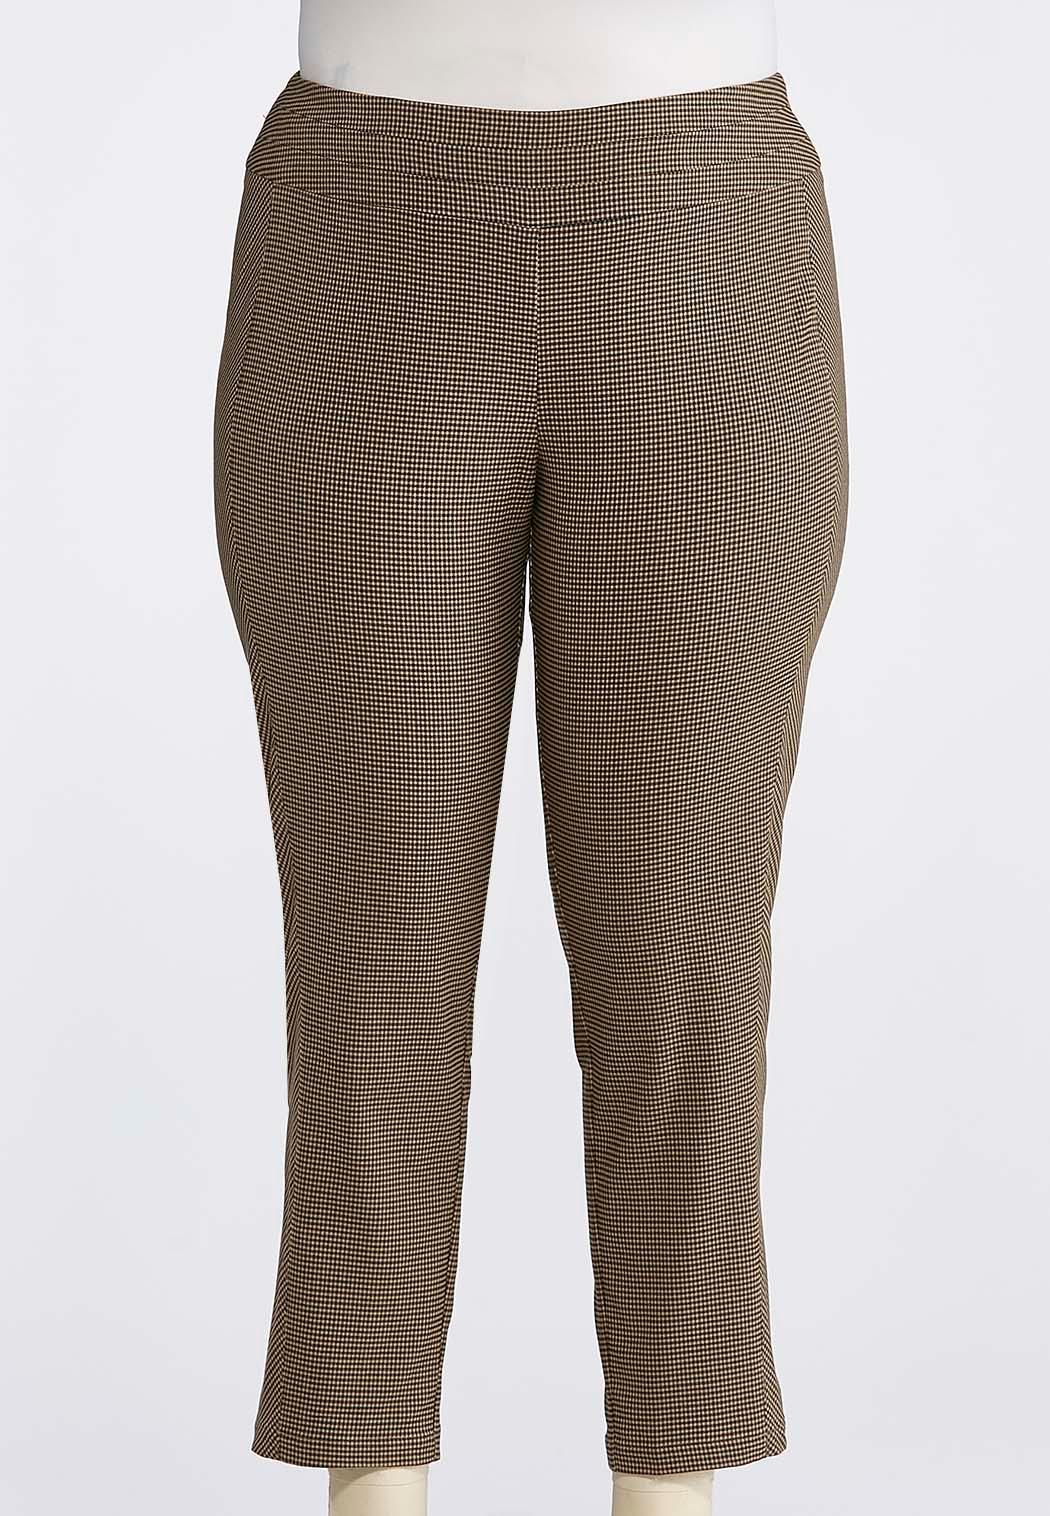 685fedab77c Plus Size Brown Plaid Ankle PantsFeel sophisticated and chic in these  stretch woven pants